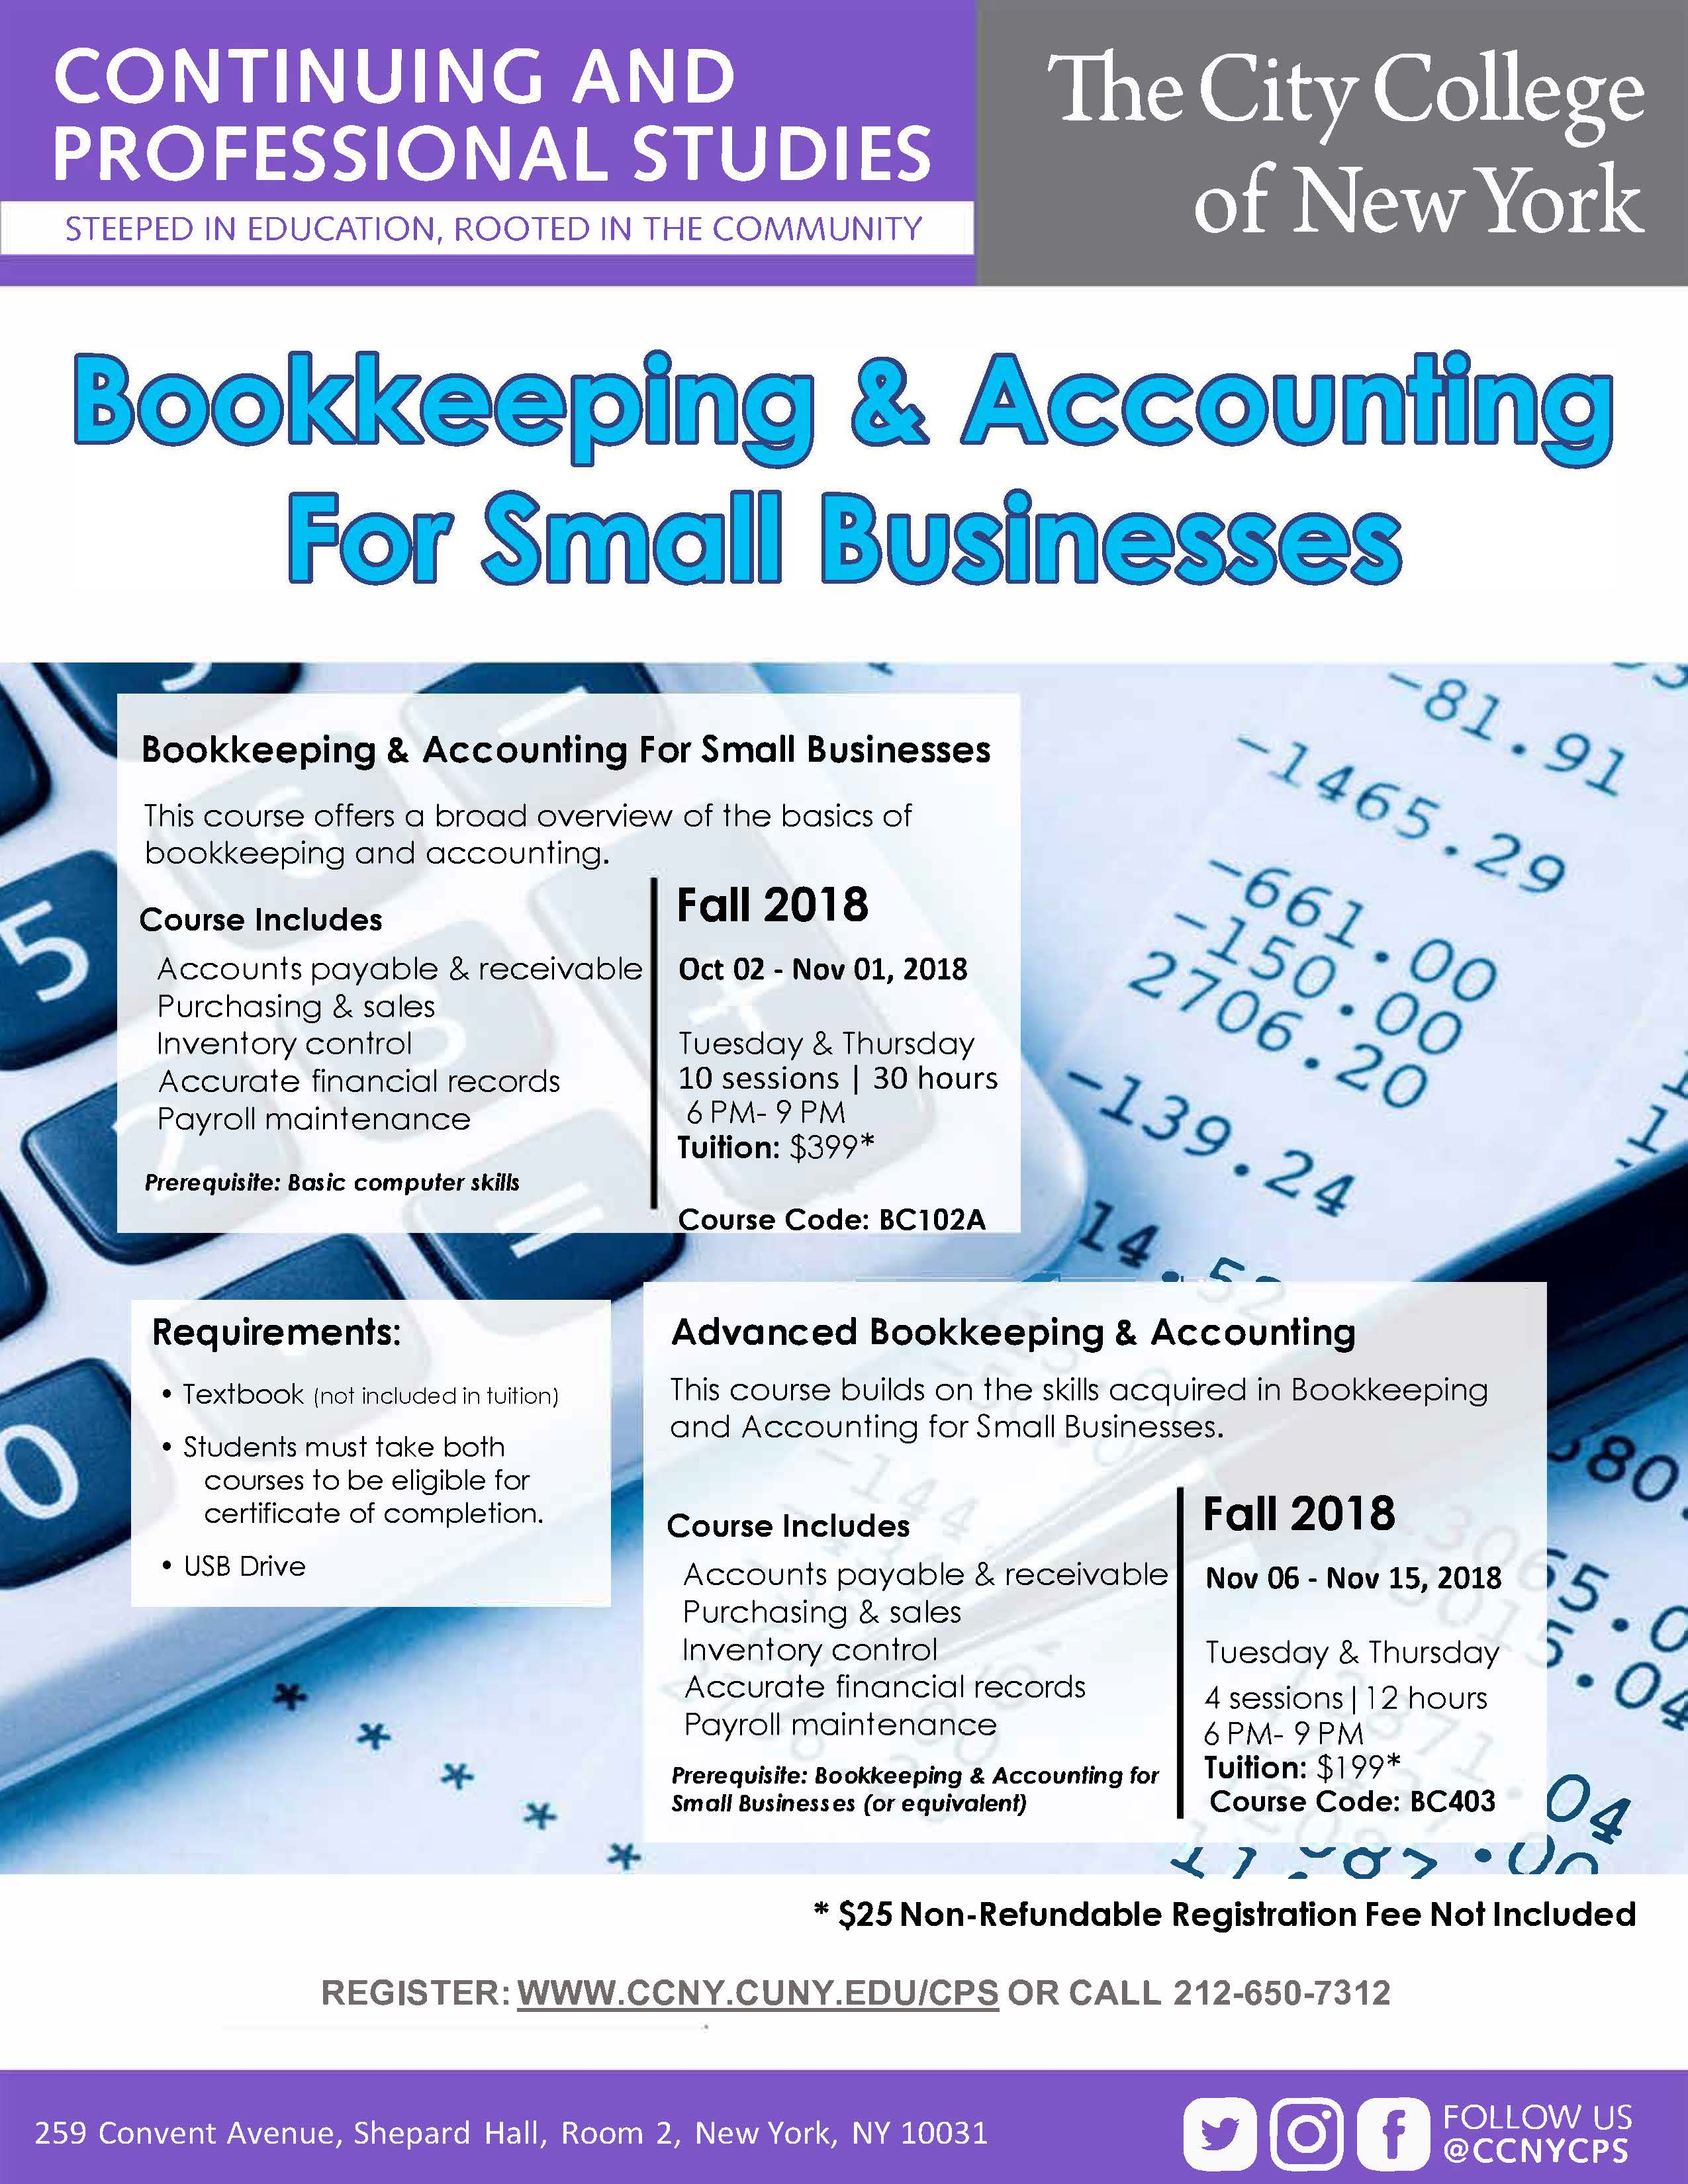 Bookkeeping & Accounting For Small Business